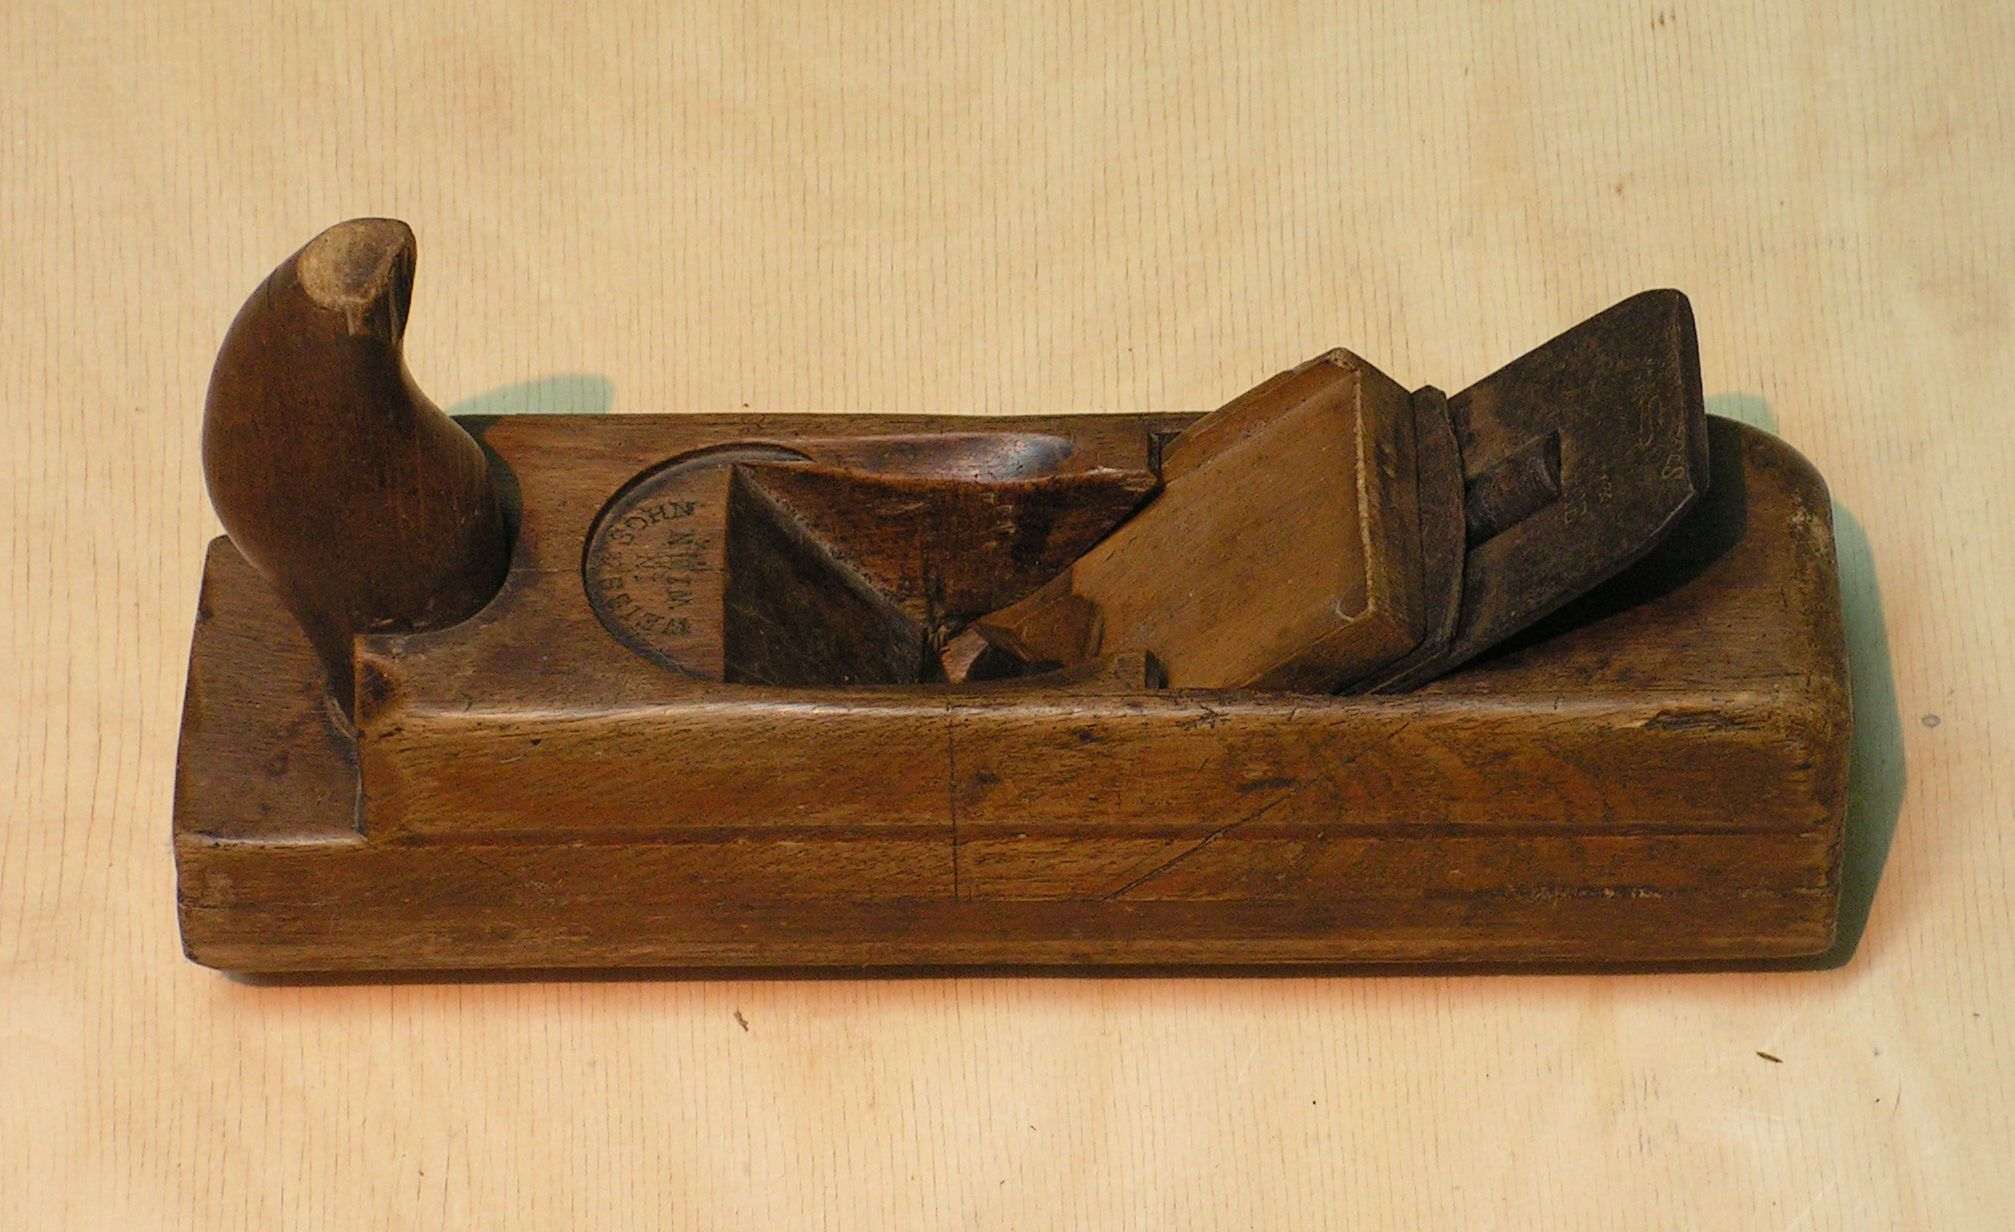 Hand held wooden plane for routing and carving